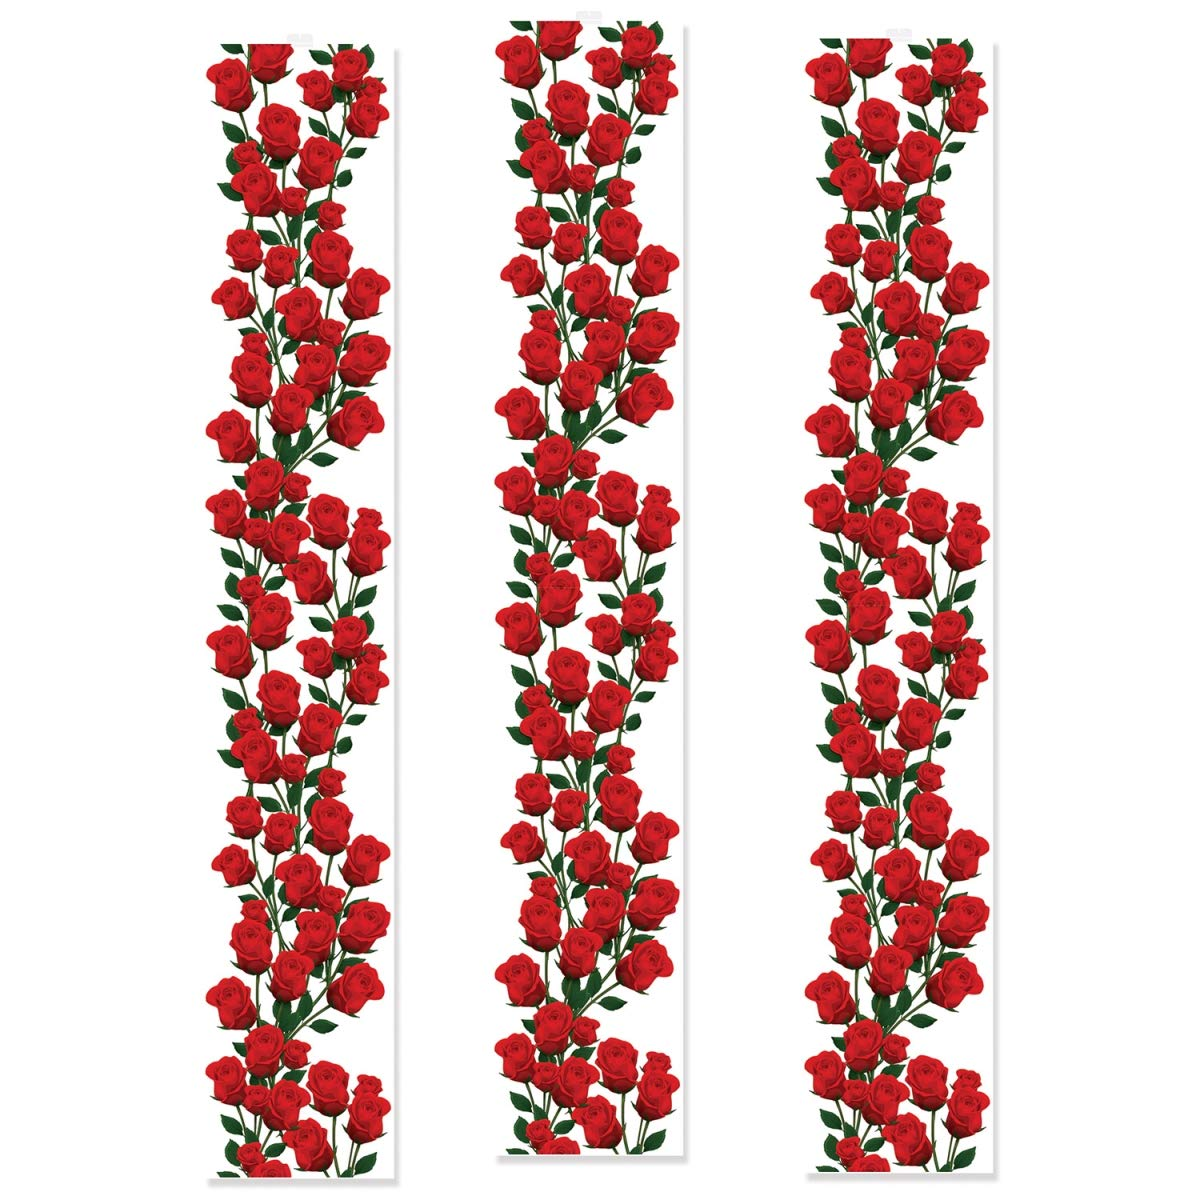 Beistle 54967 12 in. x 6 ft. Roses Party Panels - Pack of 12